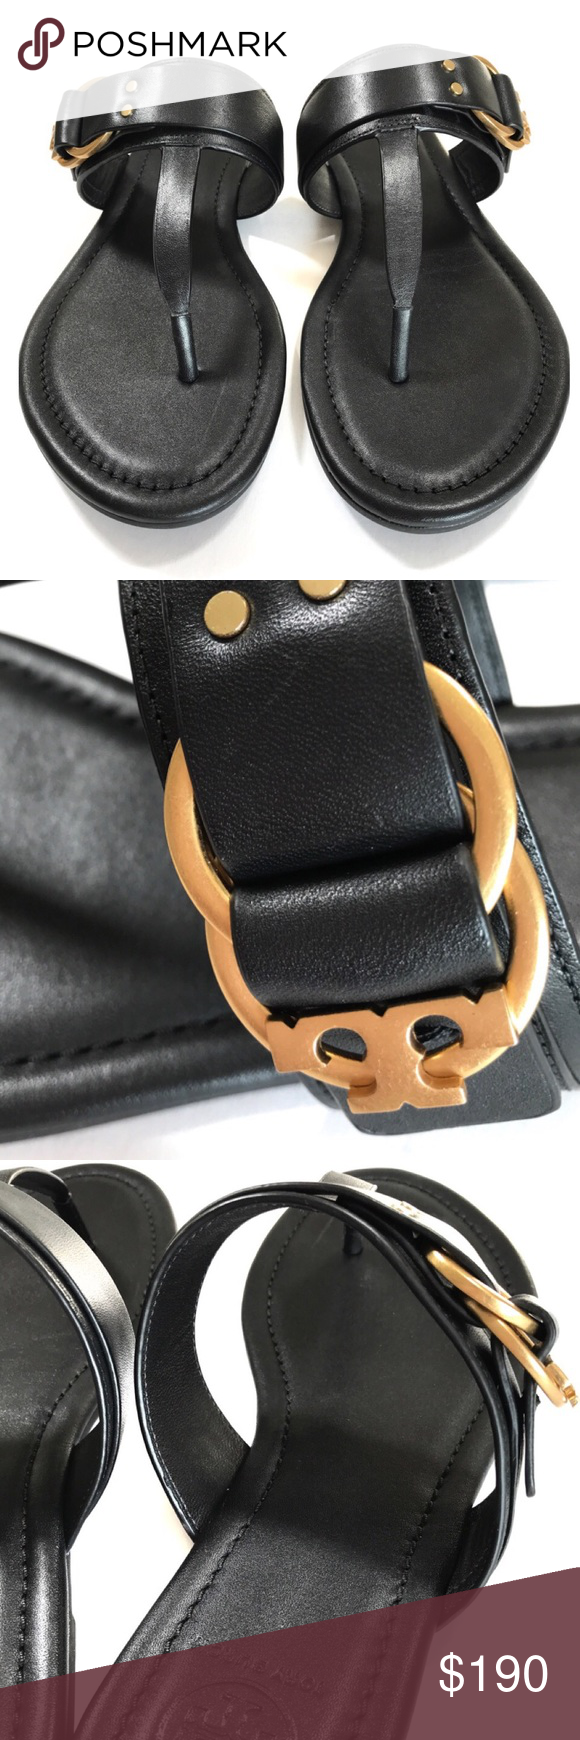 ca88c451aeb Tory Burch Marsden Flat Thong nib Tory Burch Marsden Flat Thong is  distinctively different. The unique brass brushed double-ring buckle with  rivets adds a ...